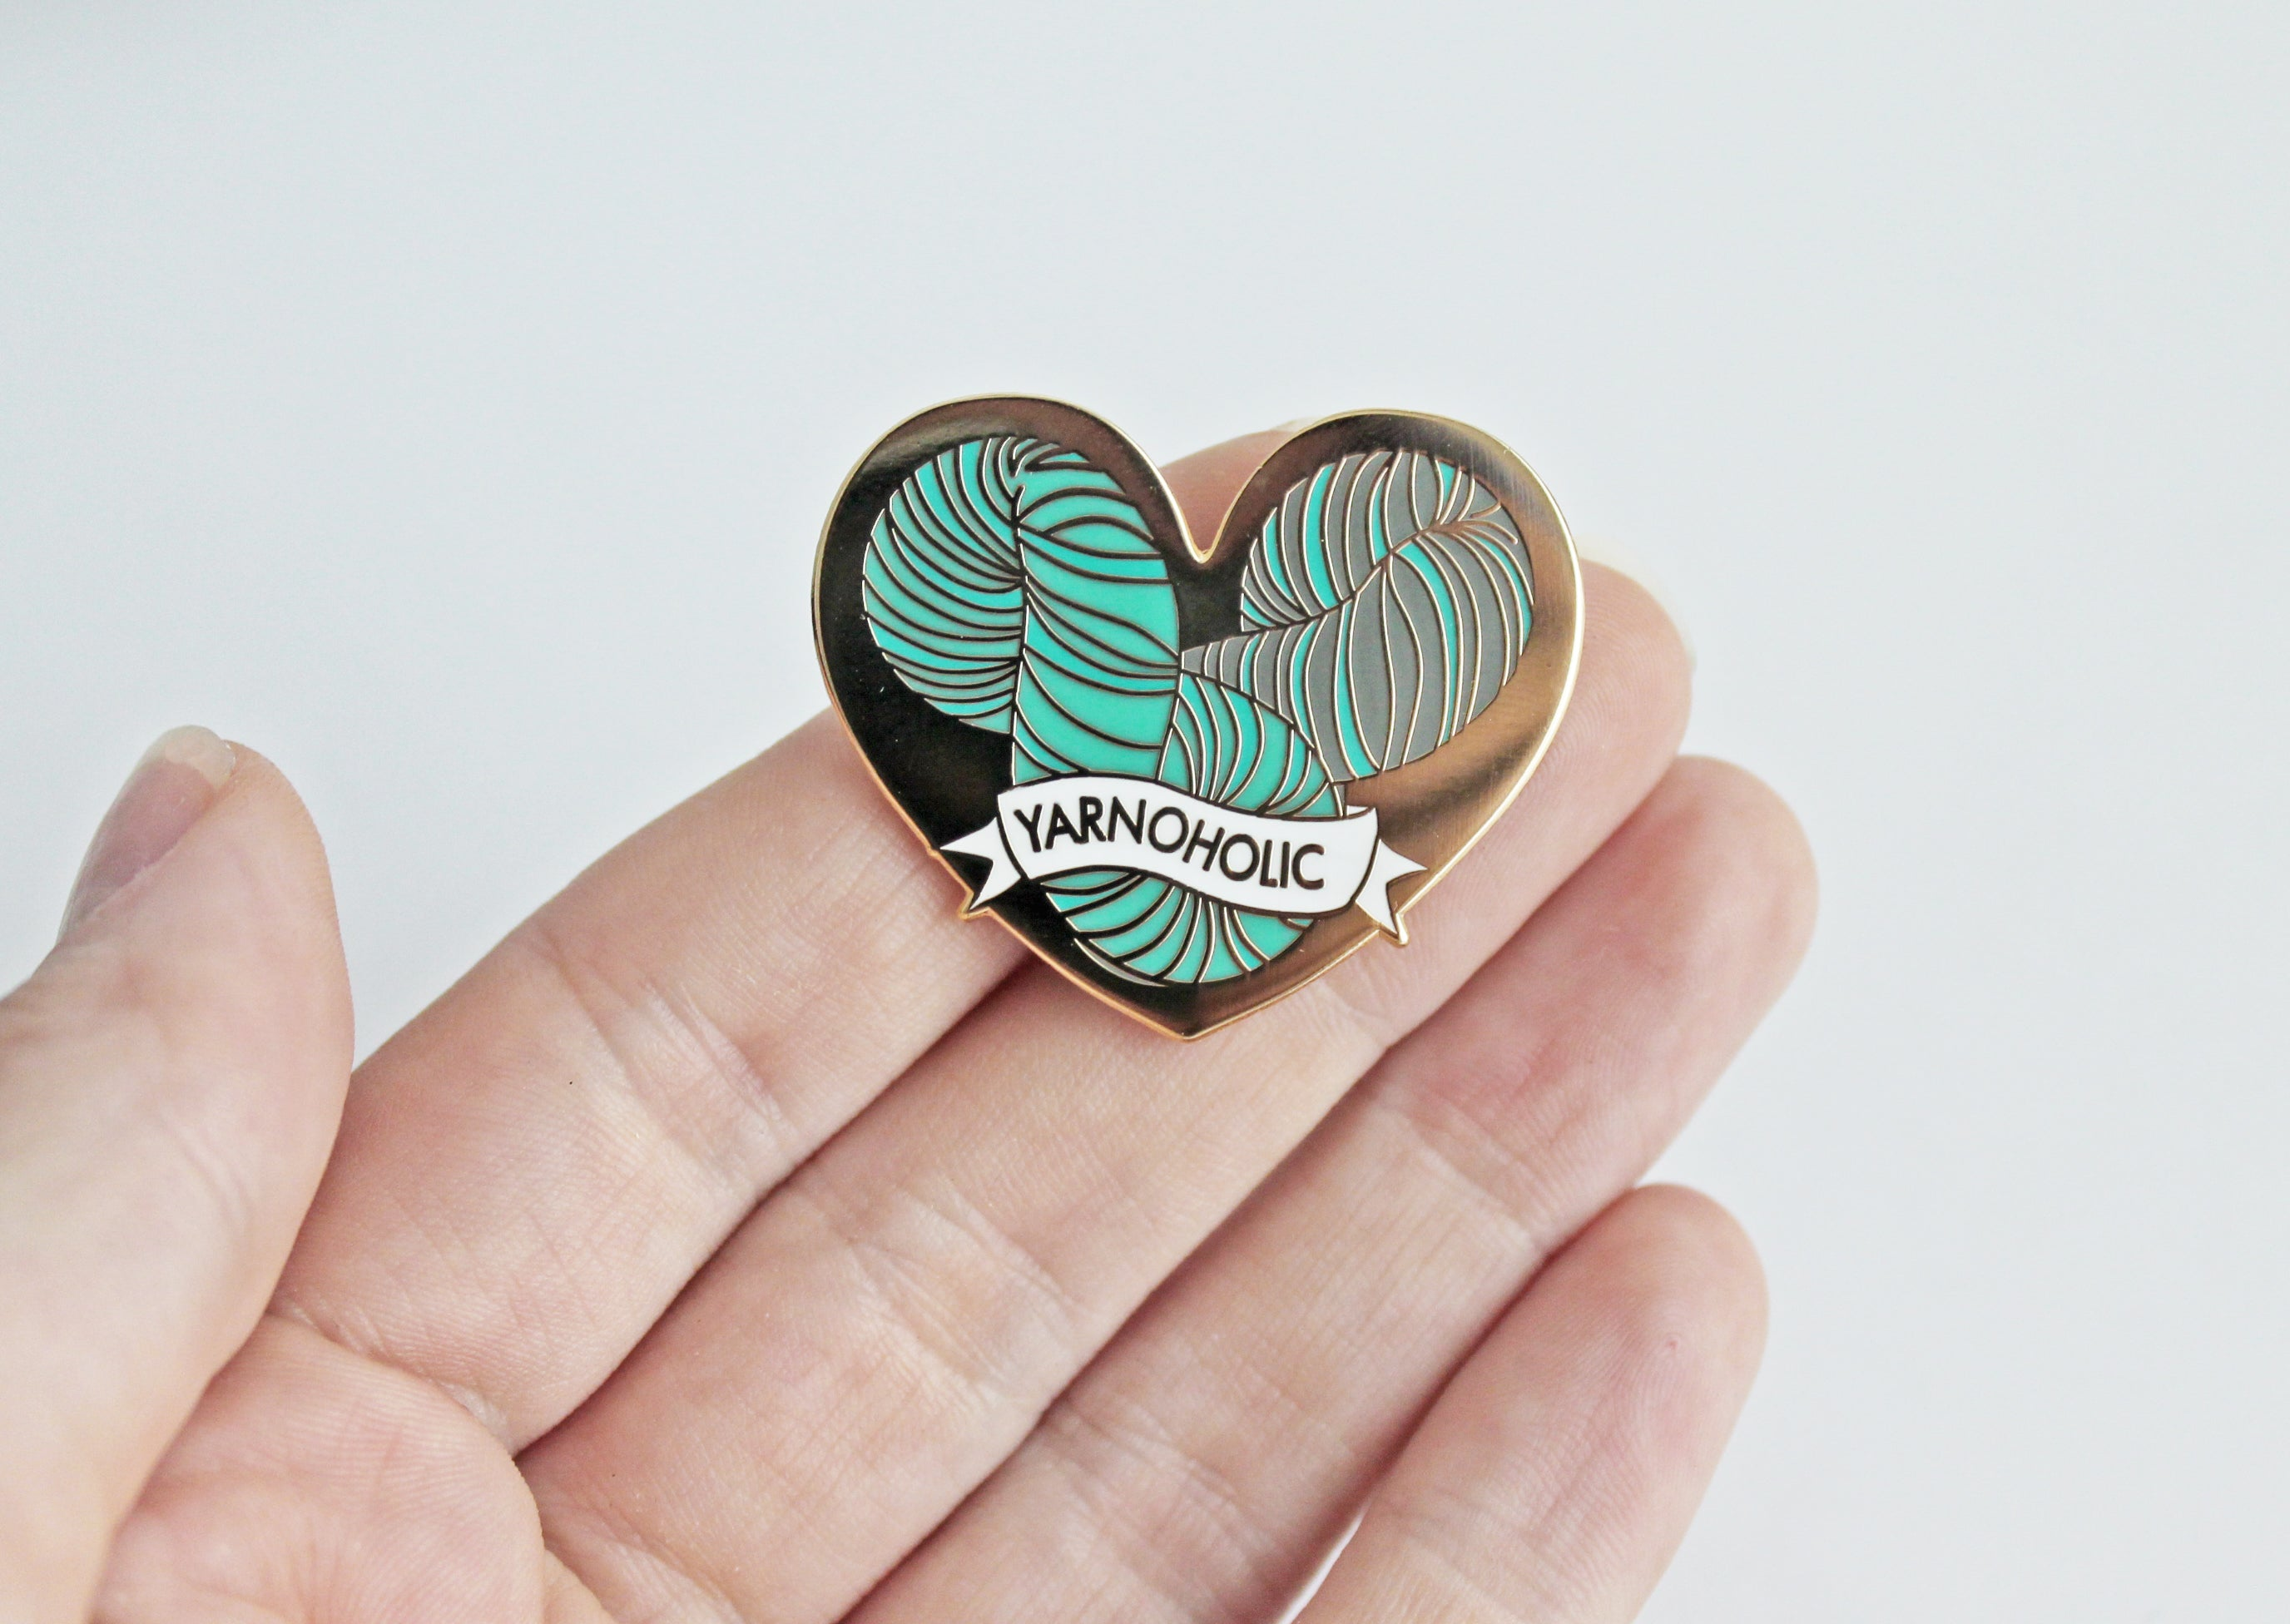 *Yarnoholic Enamel Pin *Seconds